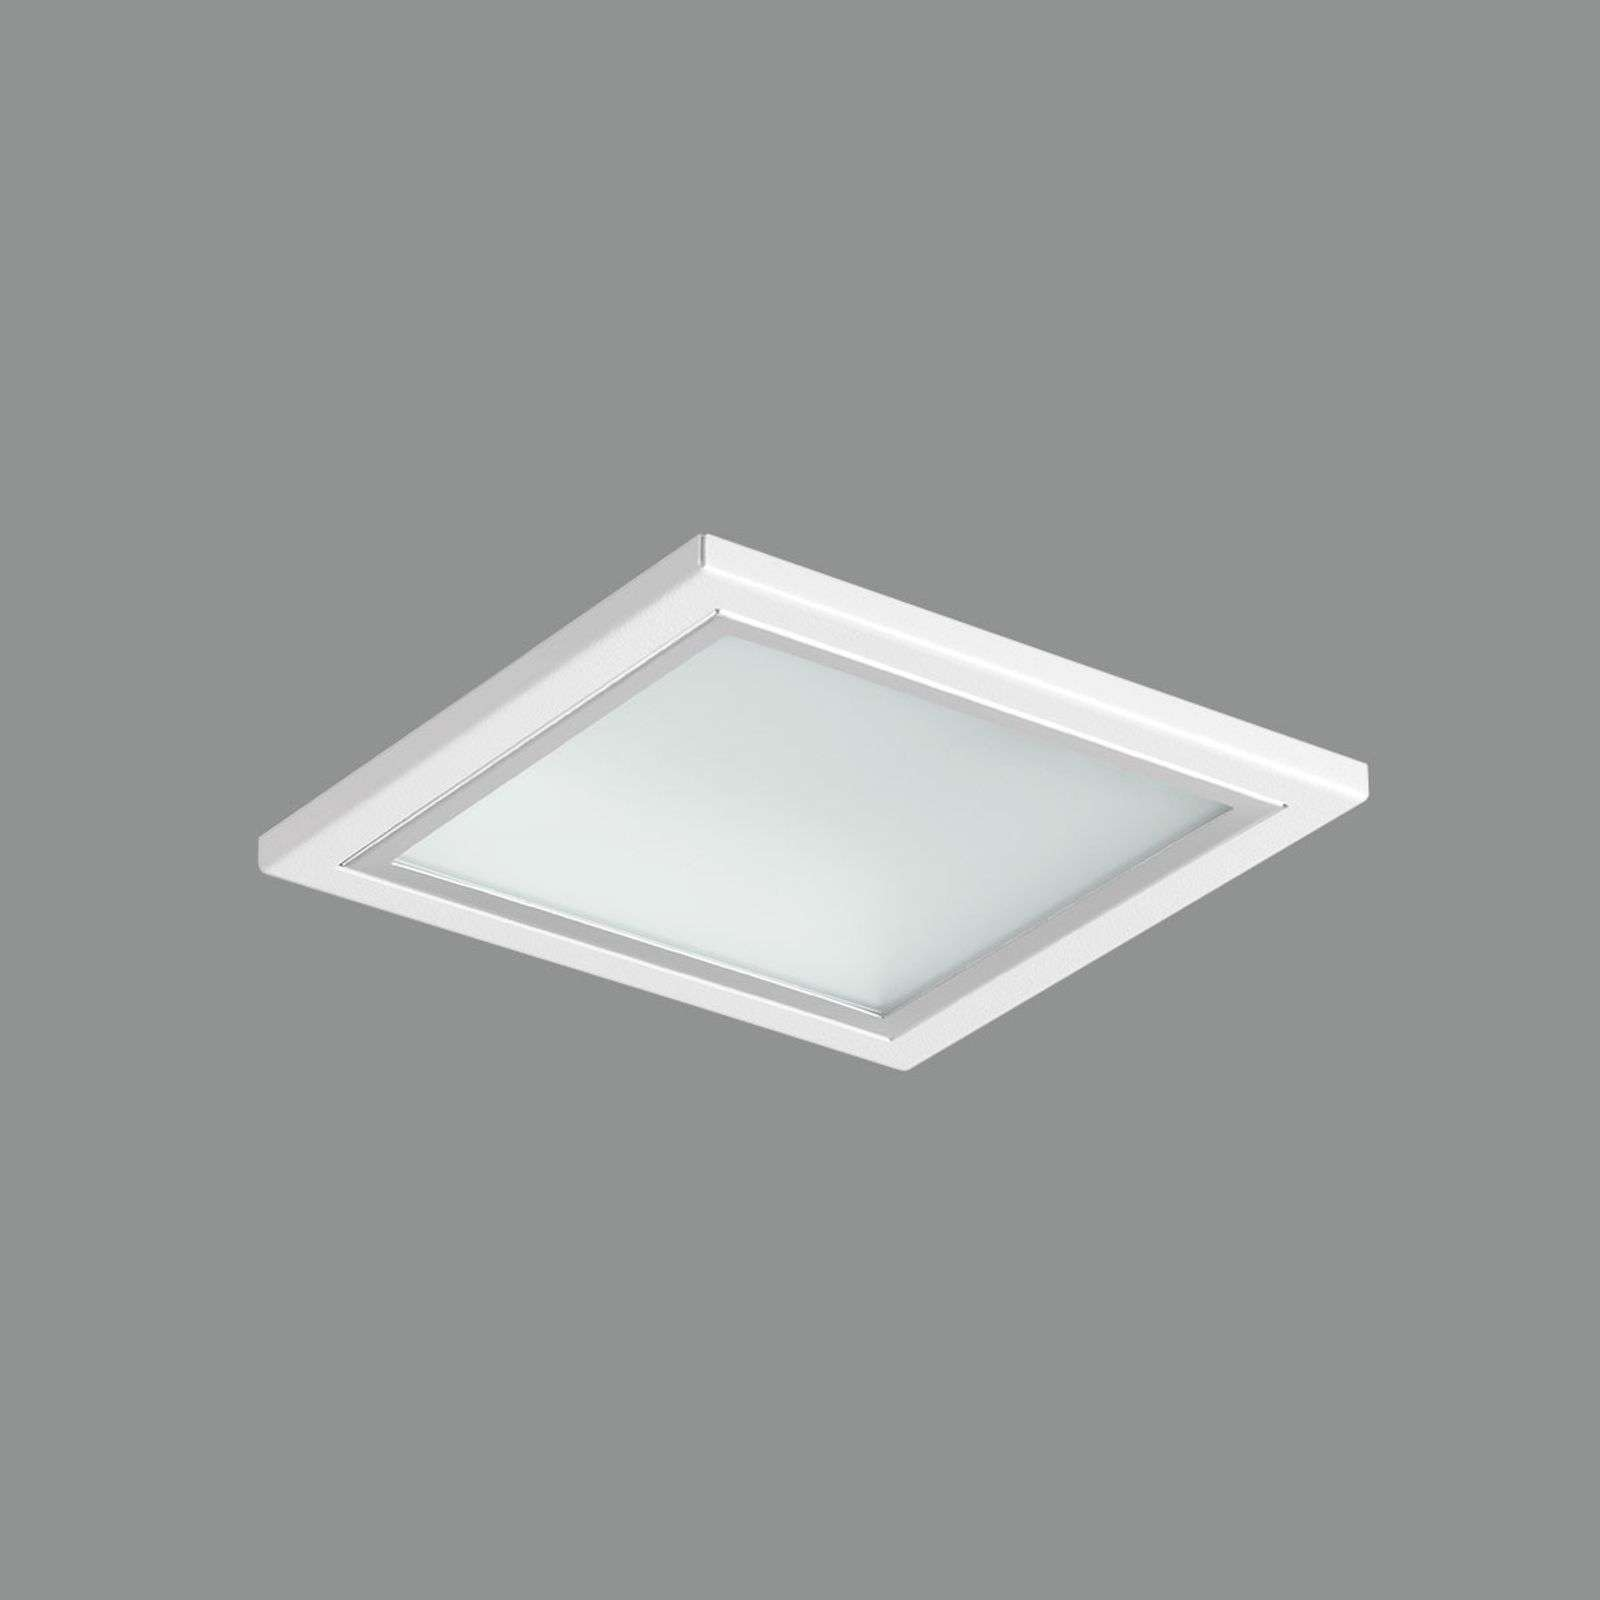 Downlight LED Noviel S PRO, 20 W, 79°, 3 000 K